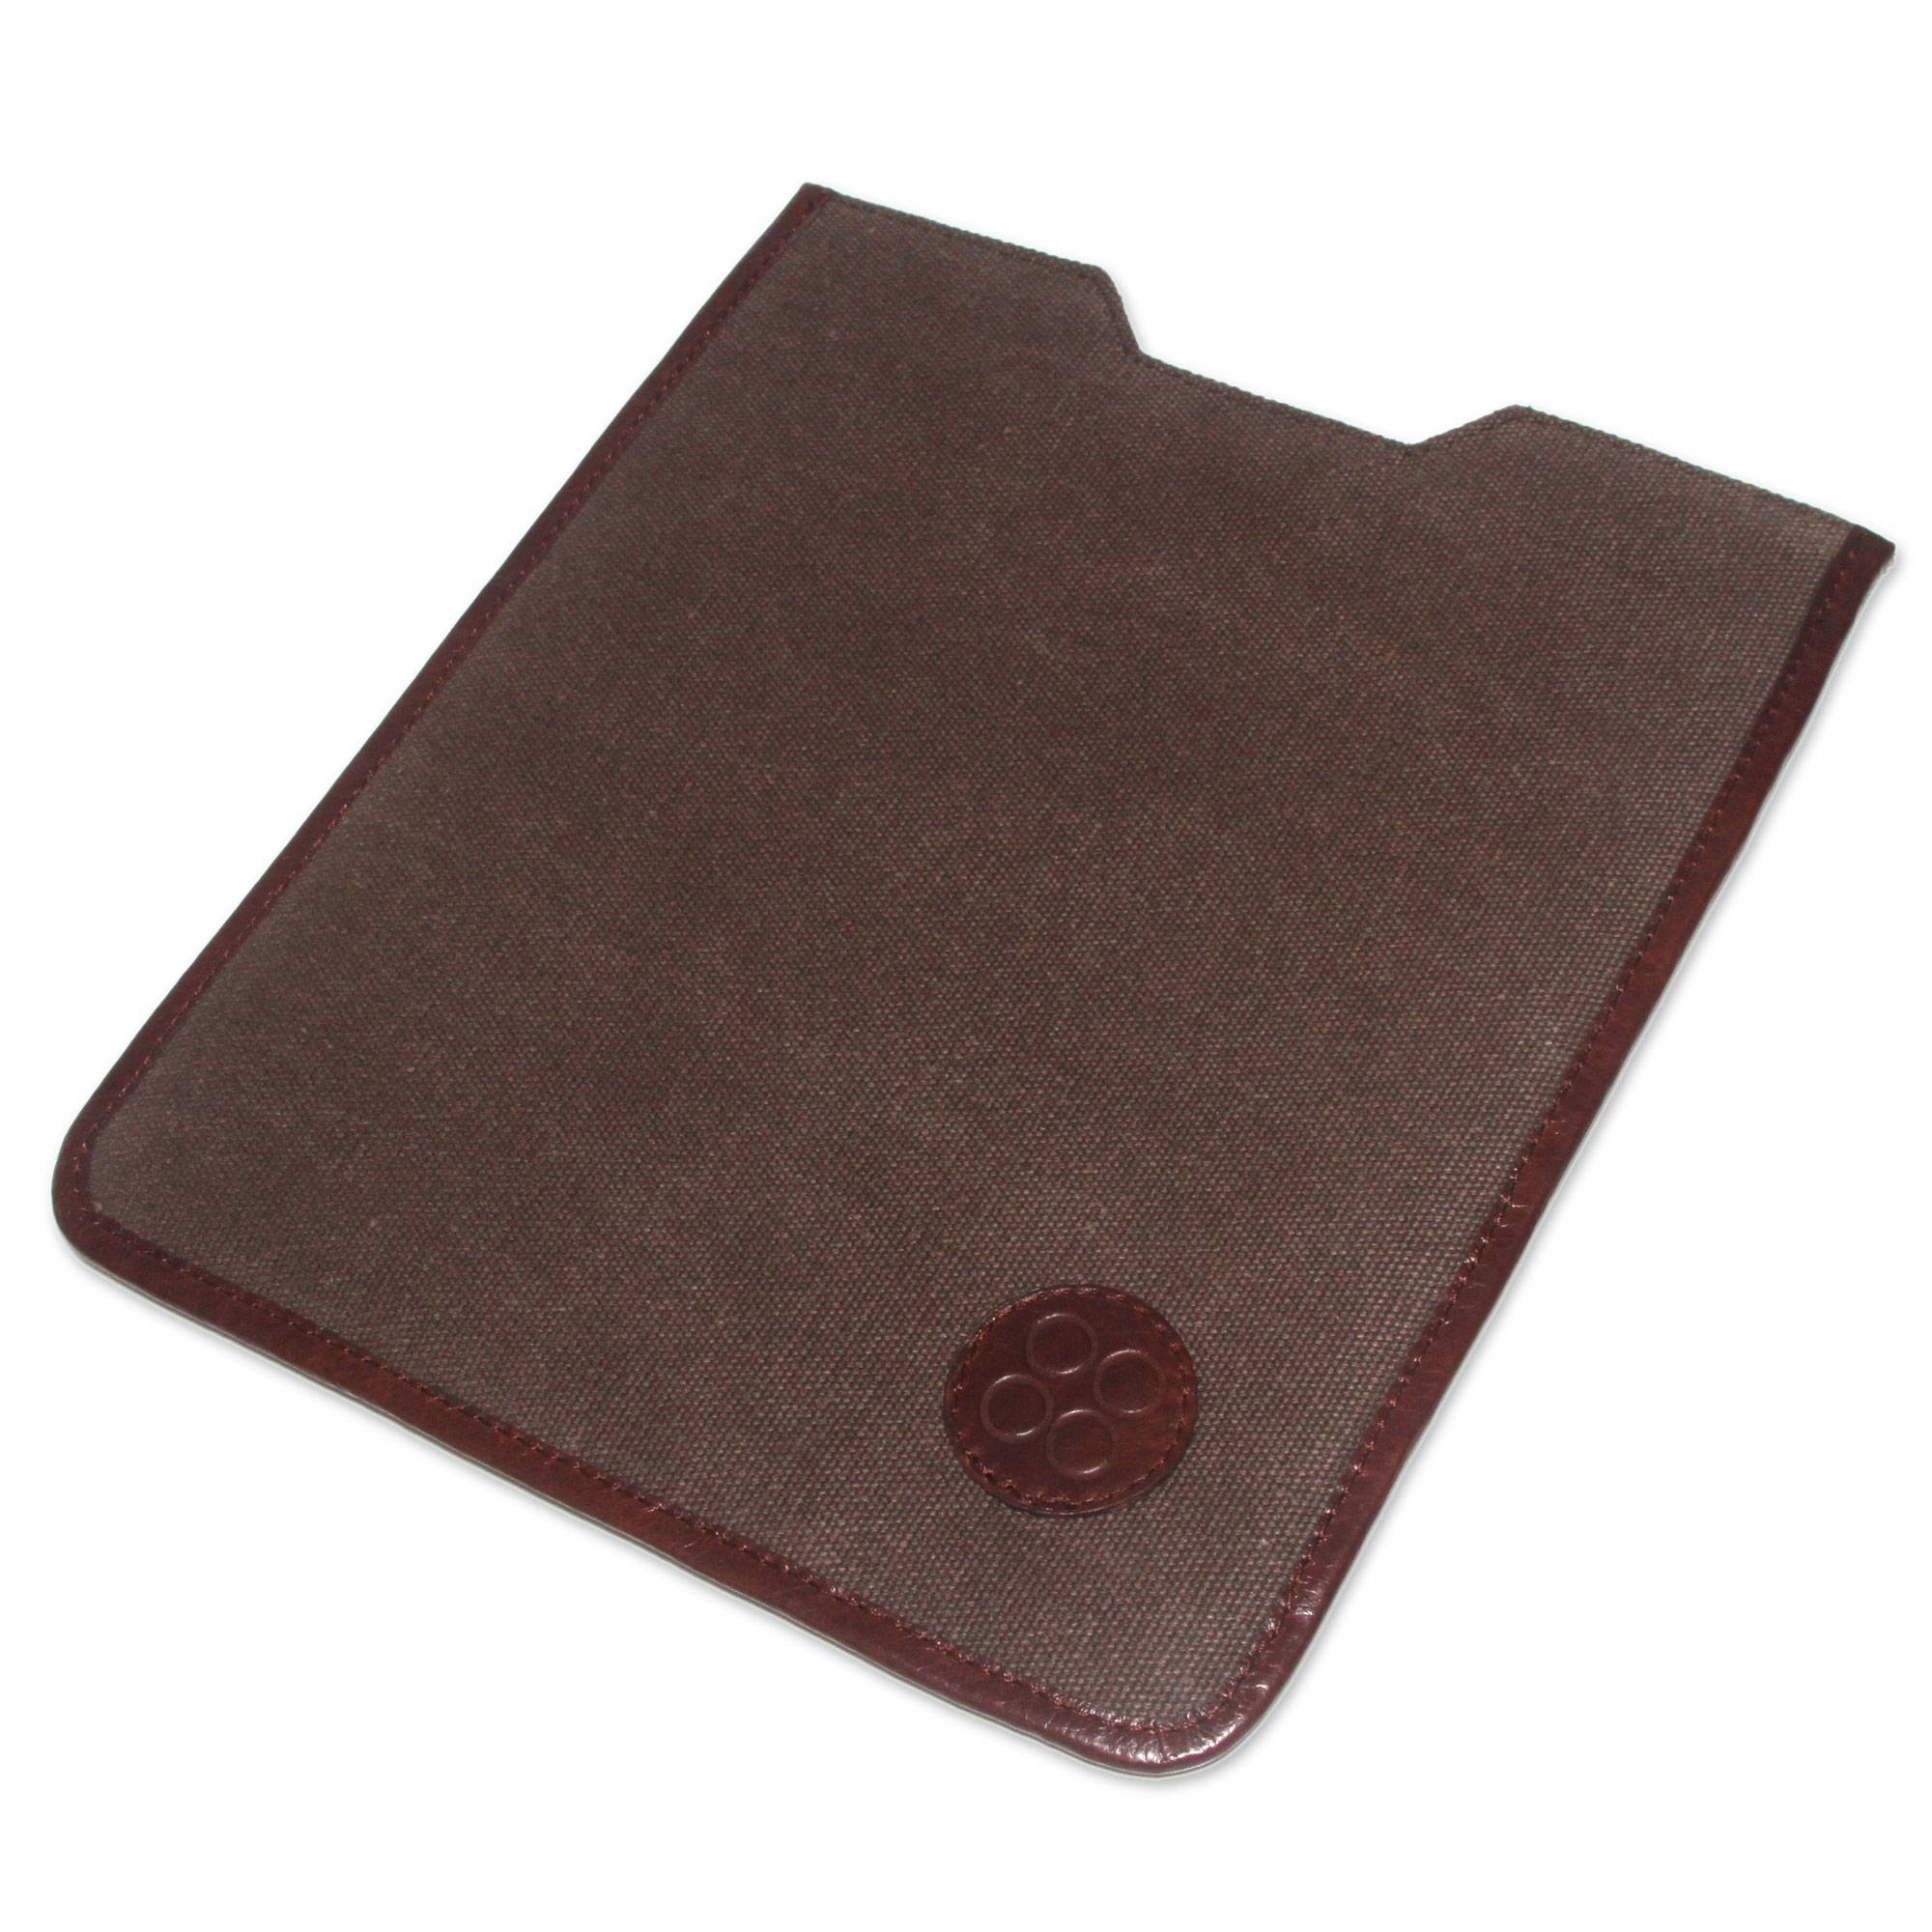 Novica Leather and cotton tablet sleeve, Versatility on the Go